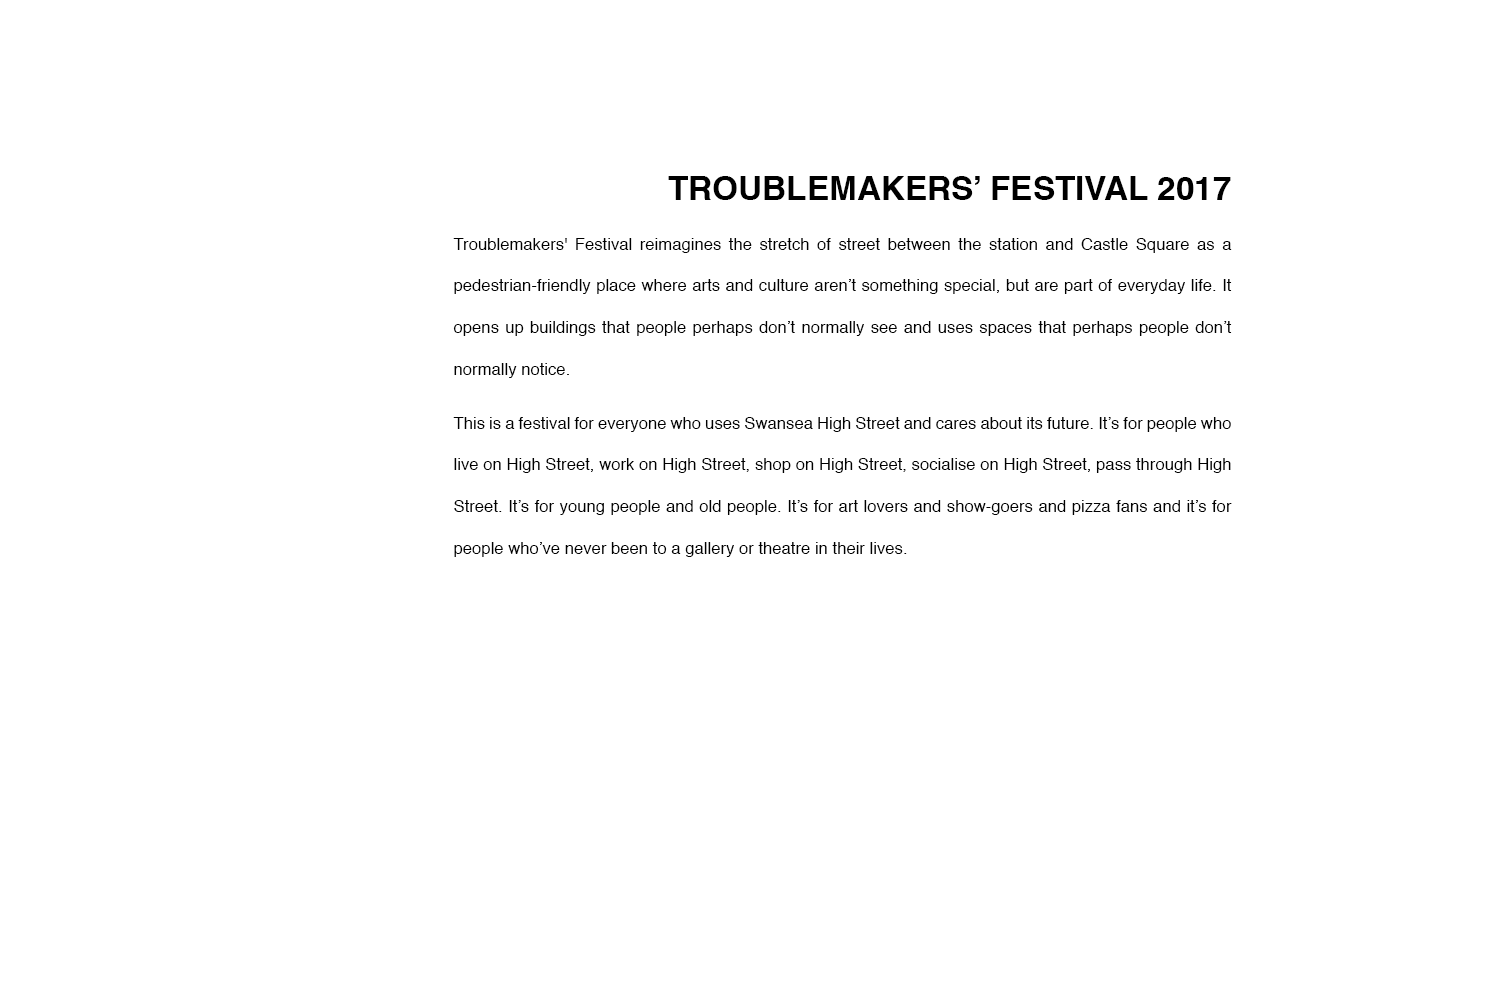 trouble-makers-festival-2017-intro.png